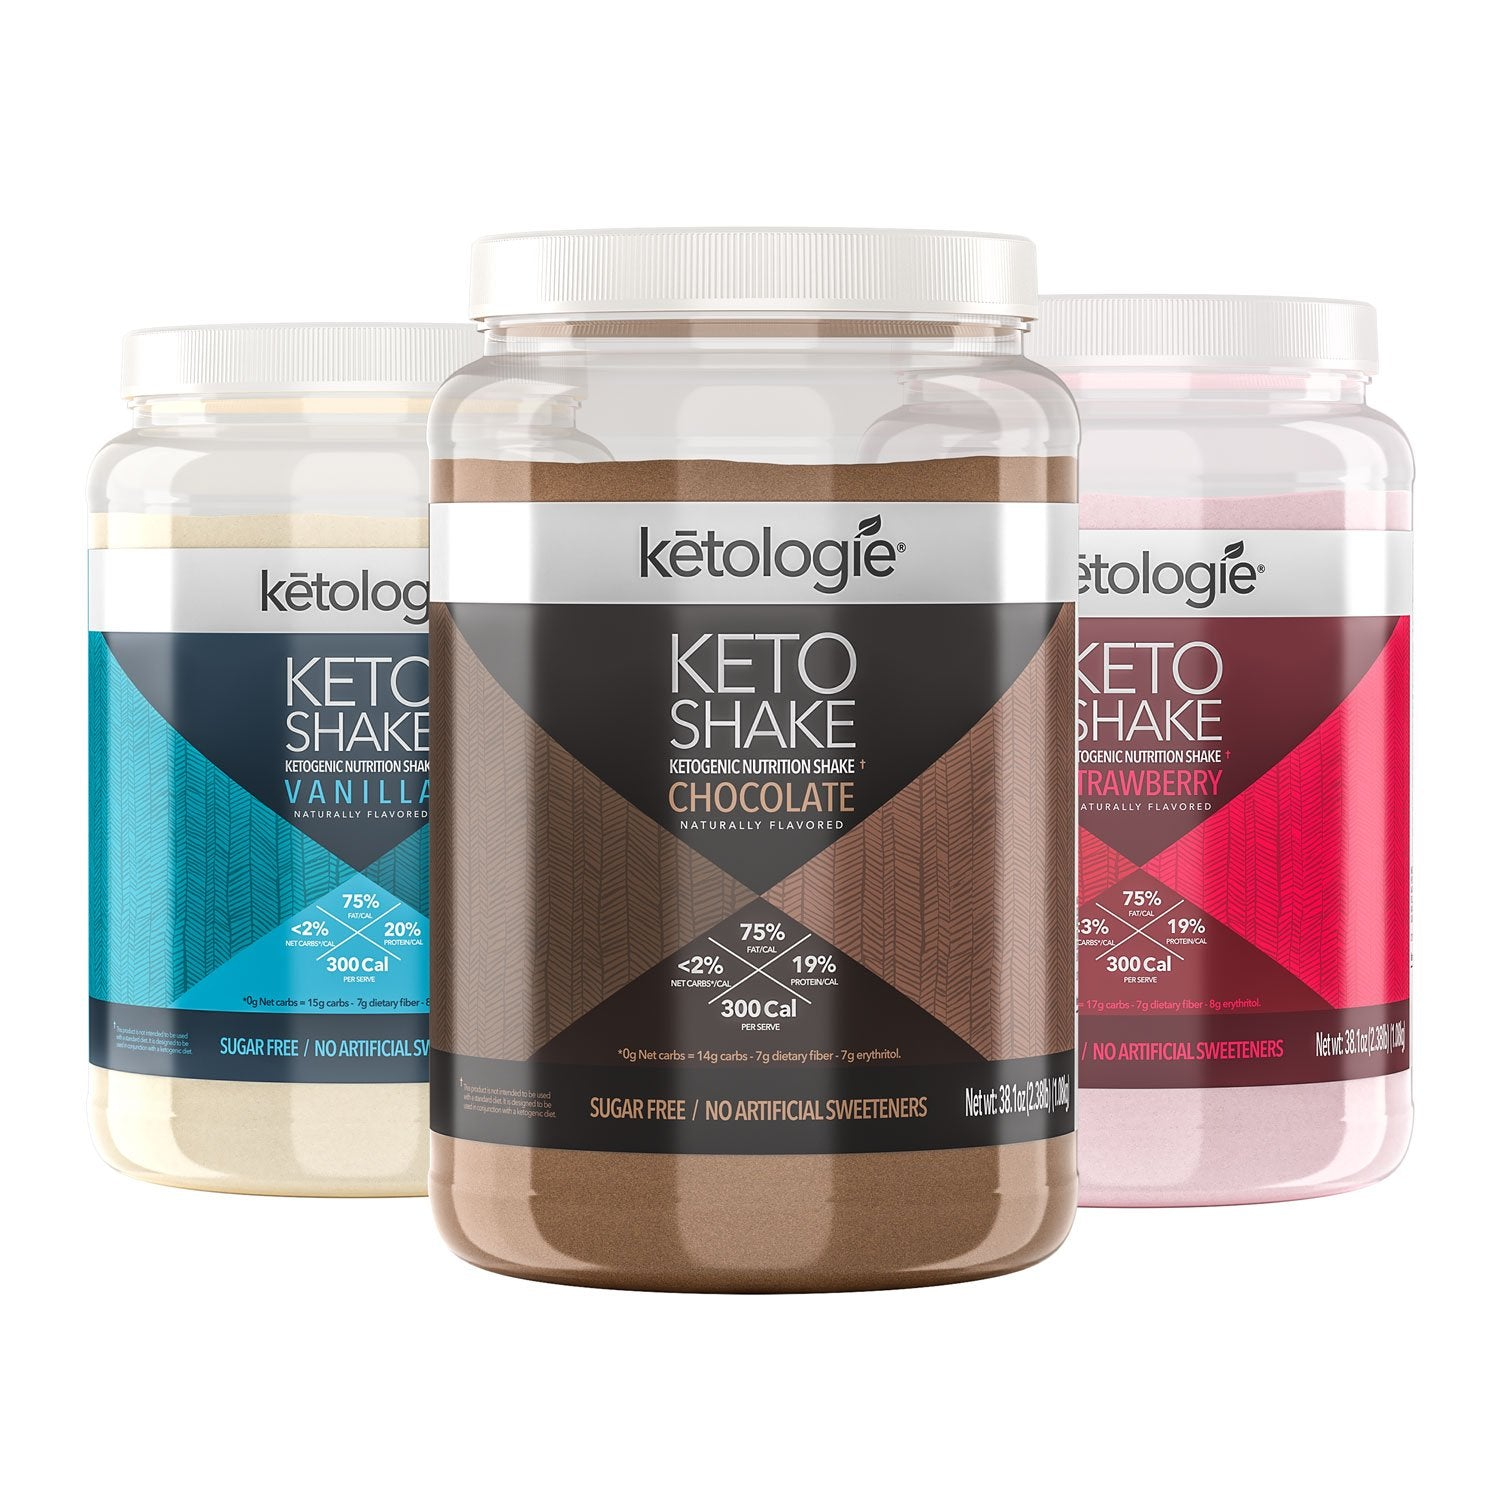 three bottles of keto shake by ketologie